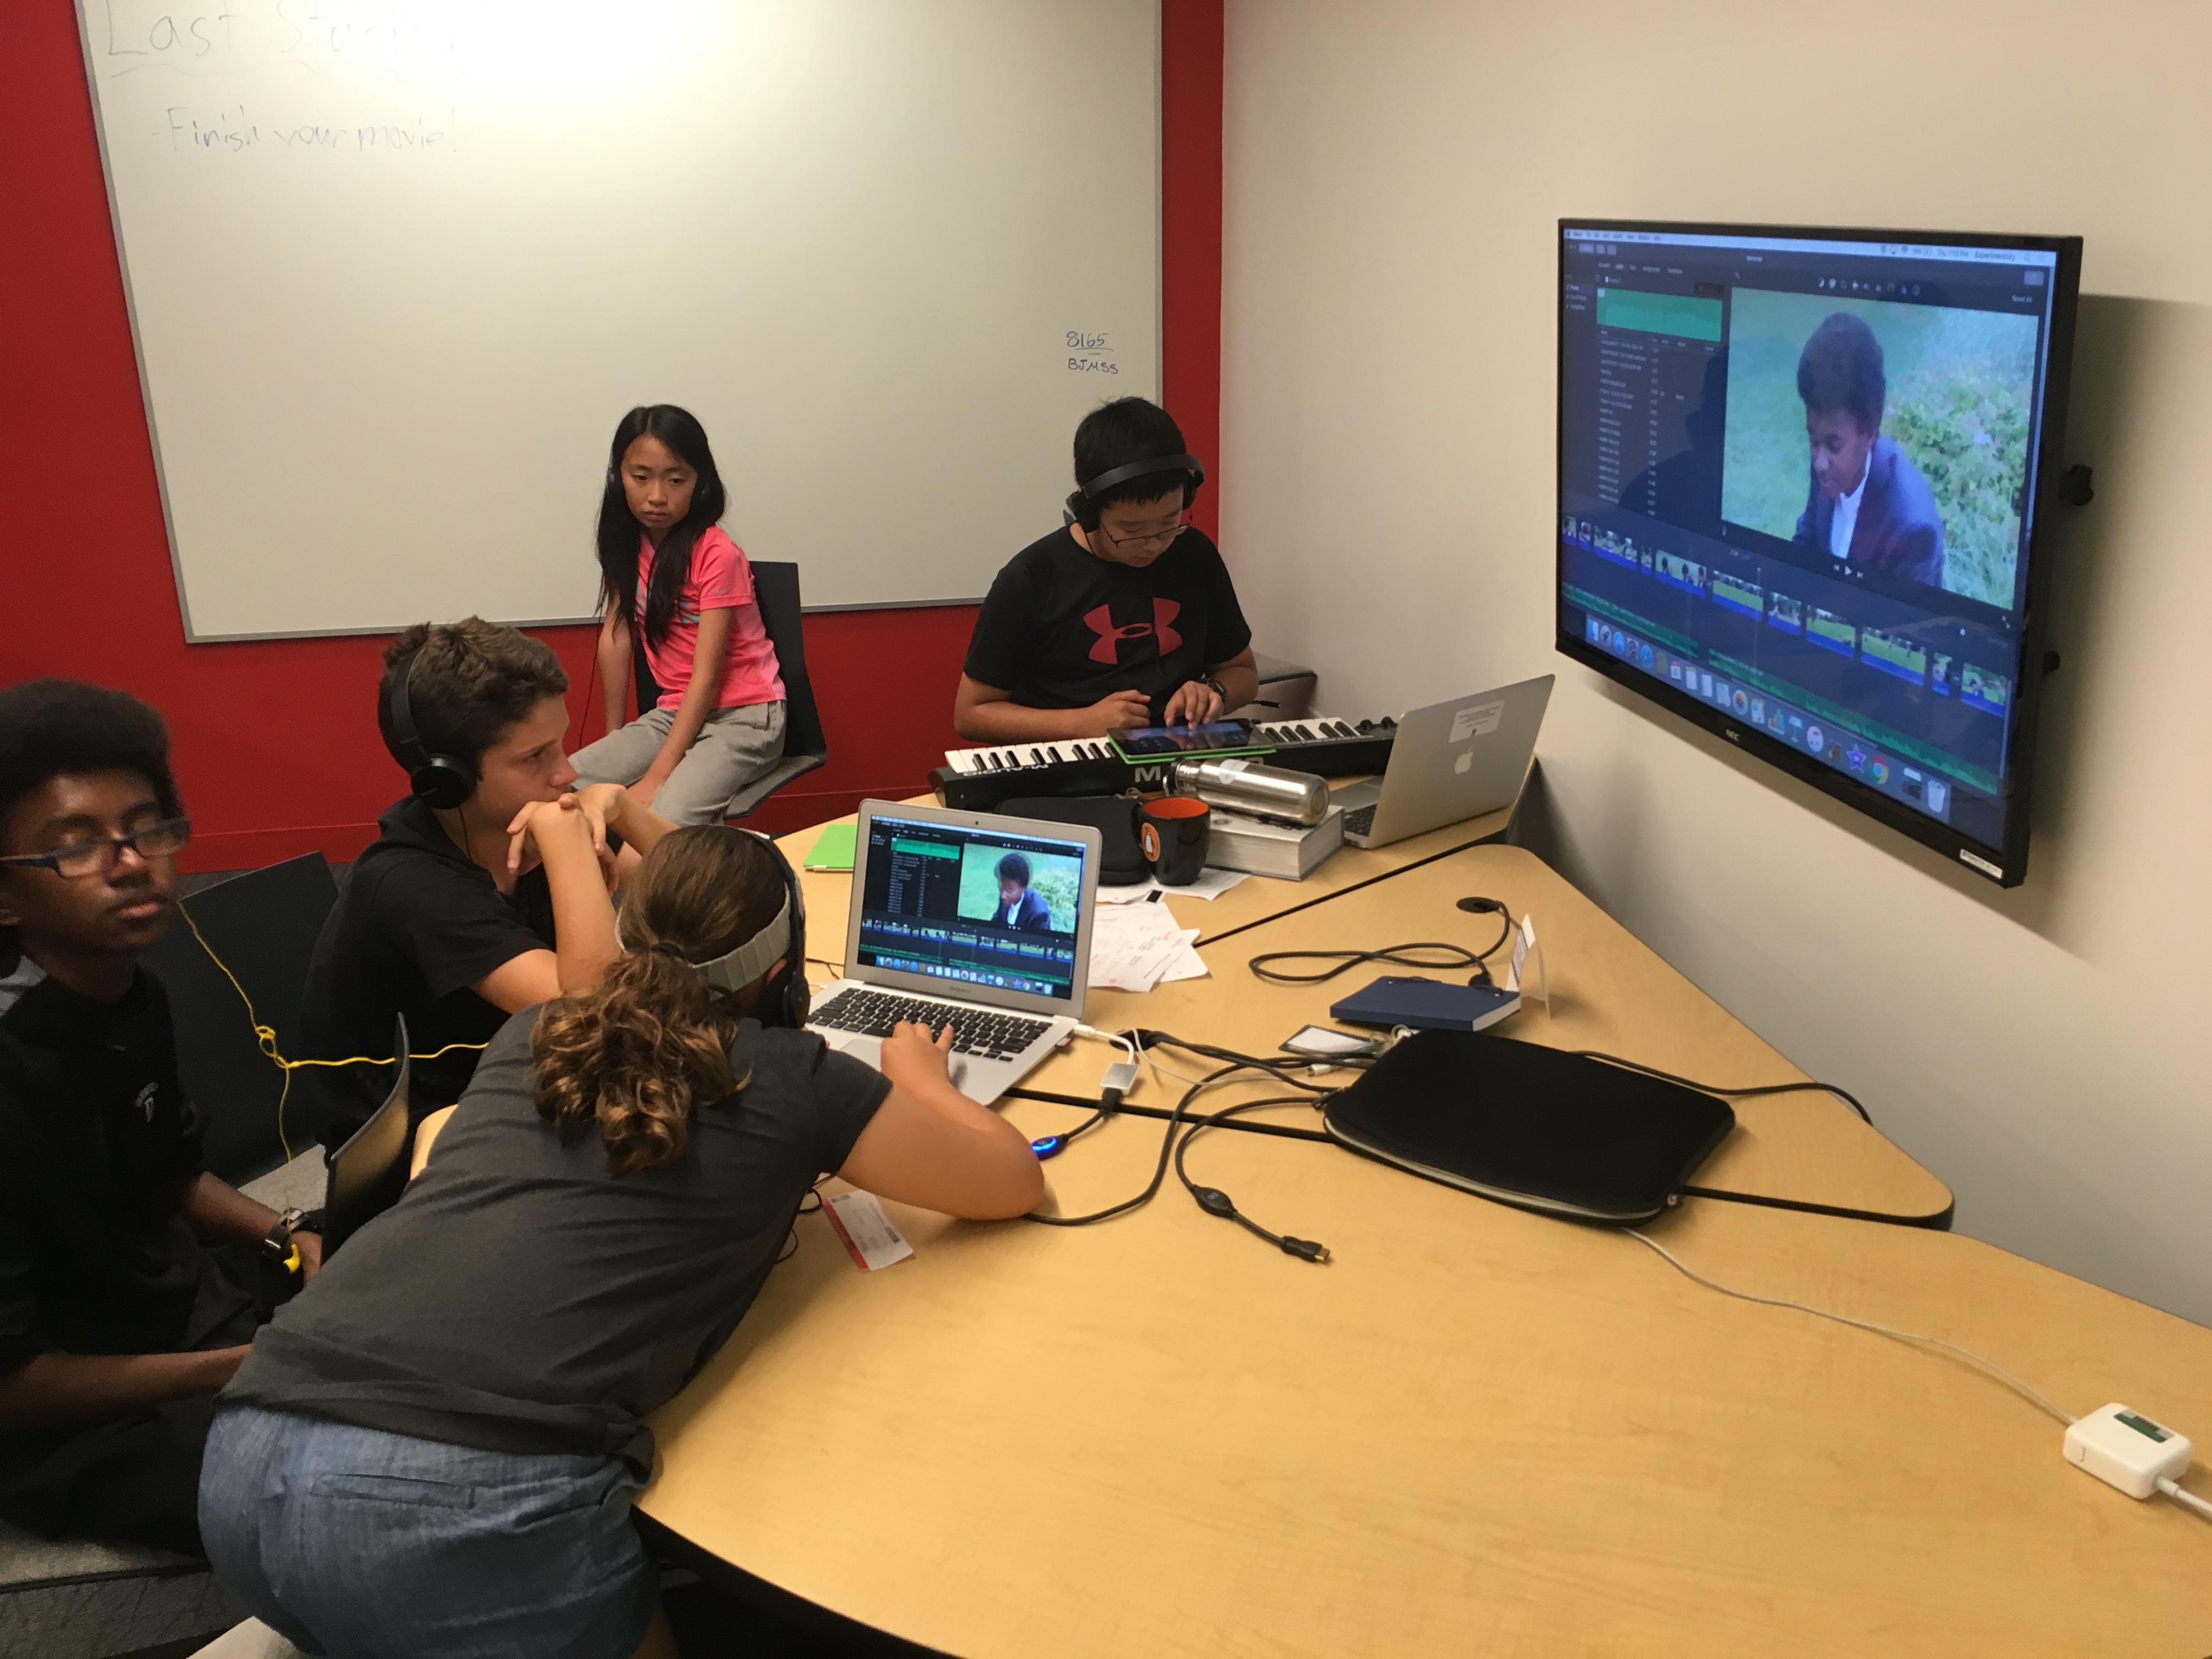 A group of students edit their film while Shawn composes some additional music for the score.